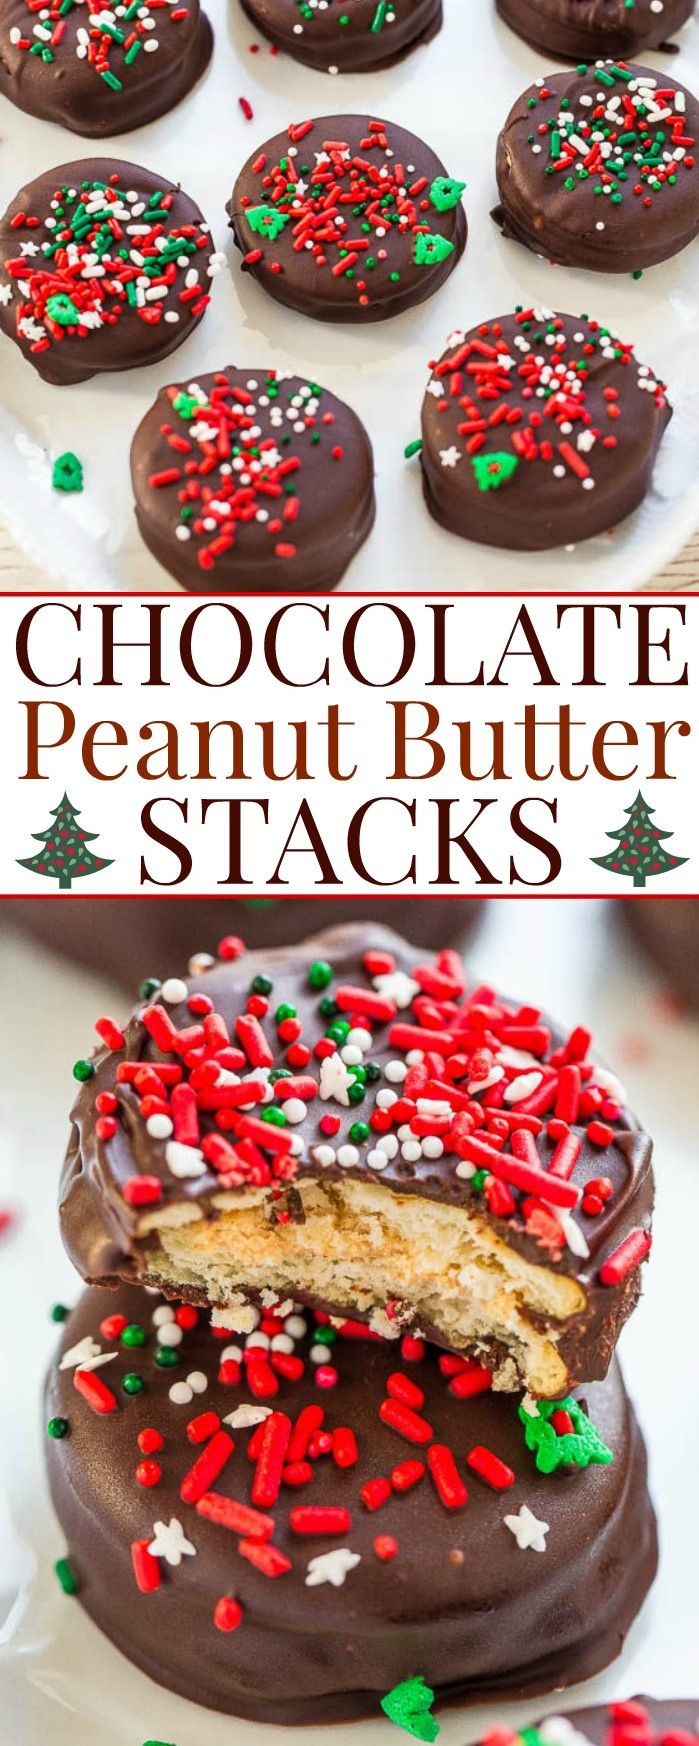 Chocolate Peanut Butter Stacks